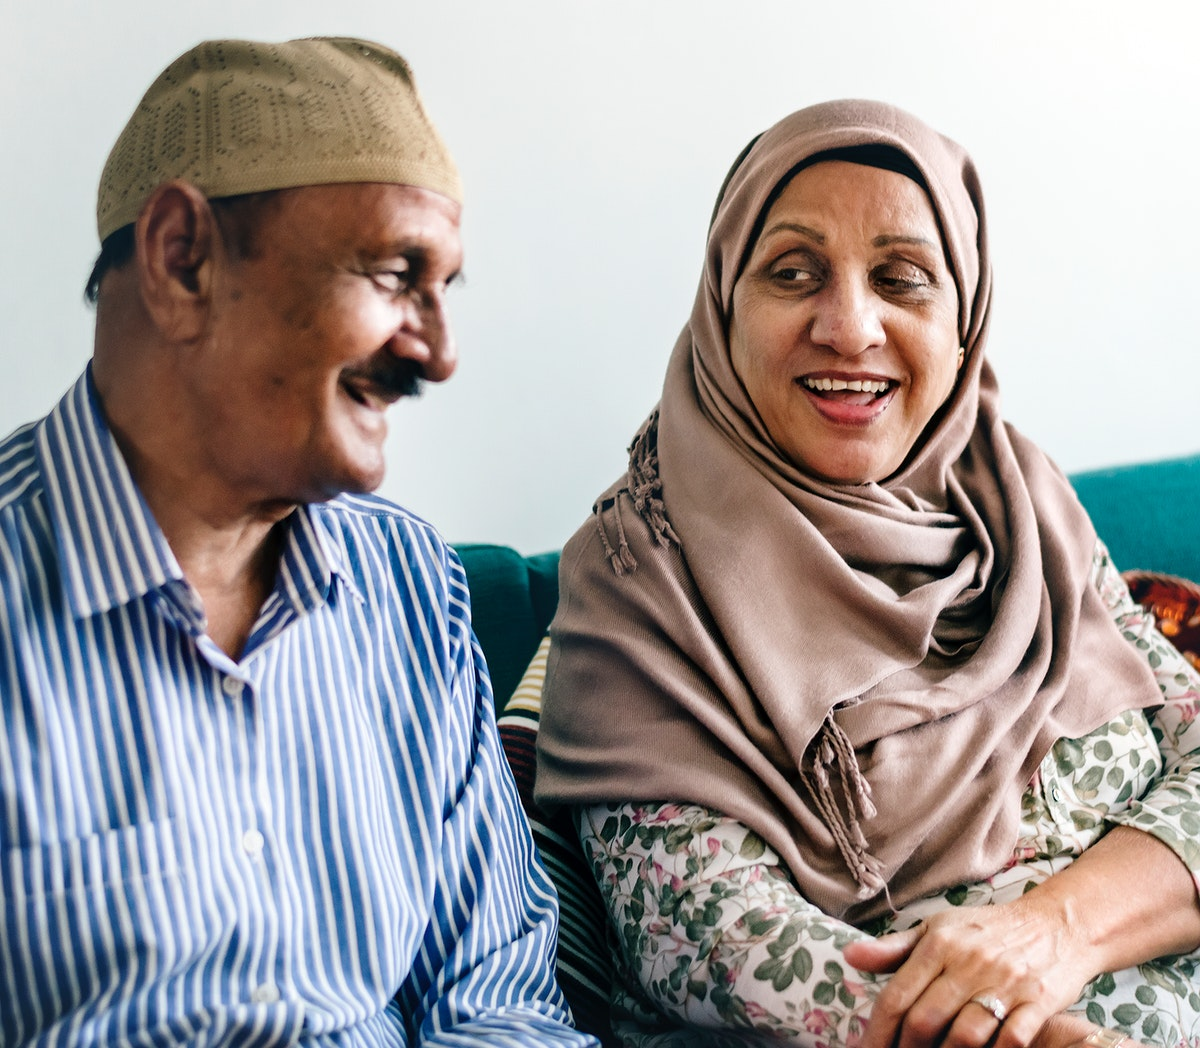 Mature Muslim couple at home